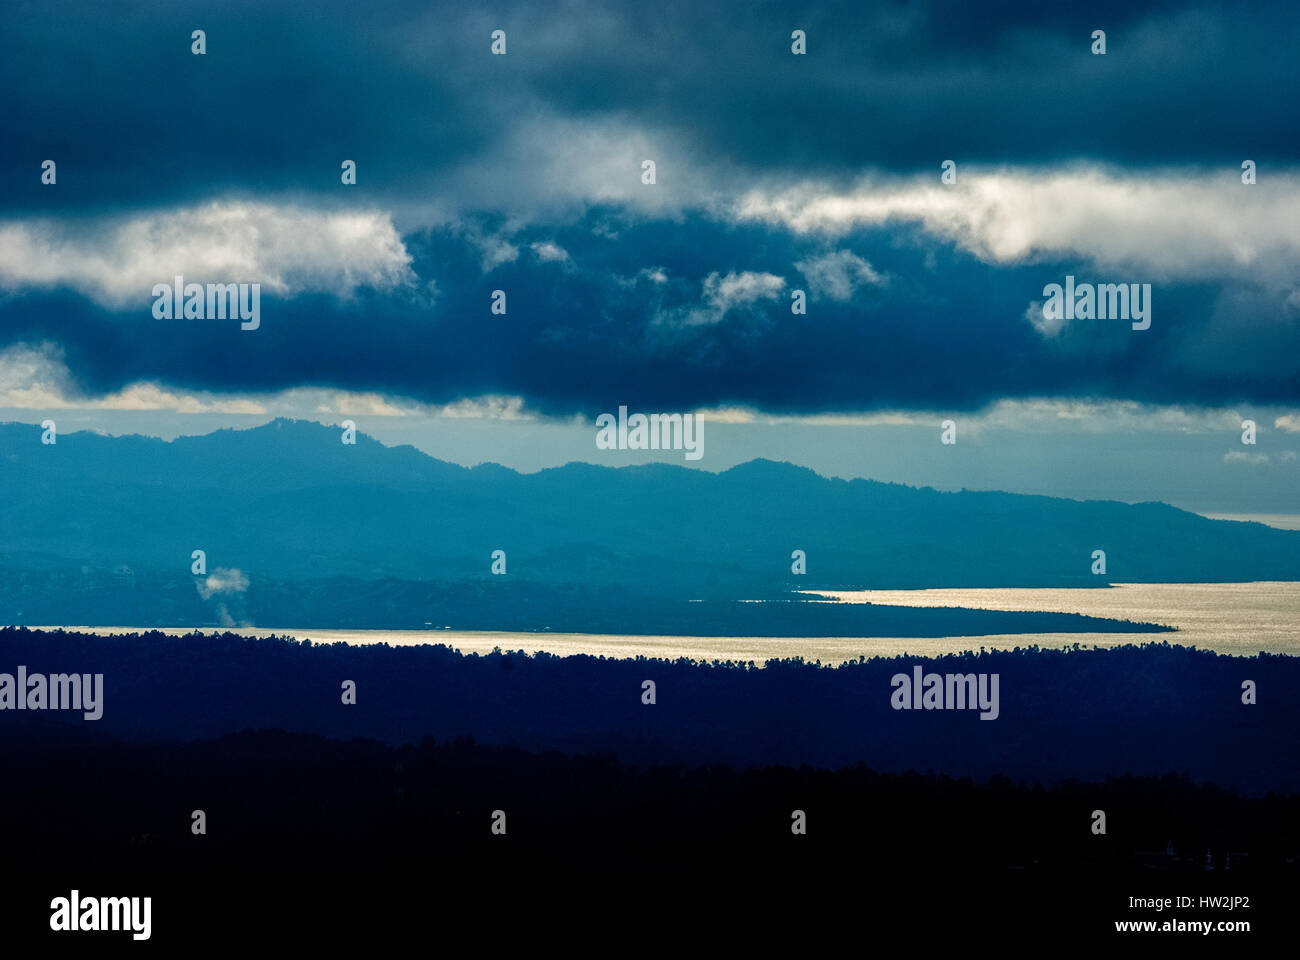 Rain clouds hovering over the coastlines of North Sulawesi, Indonesia. © Reynold Sumayku - Stock Image